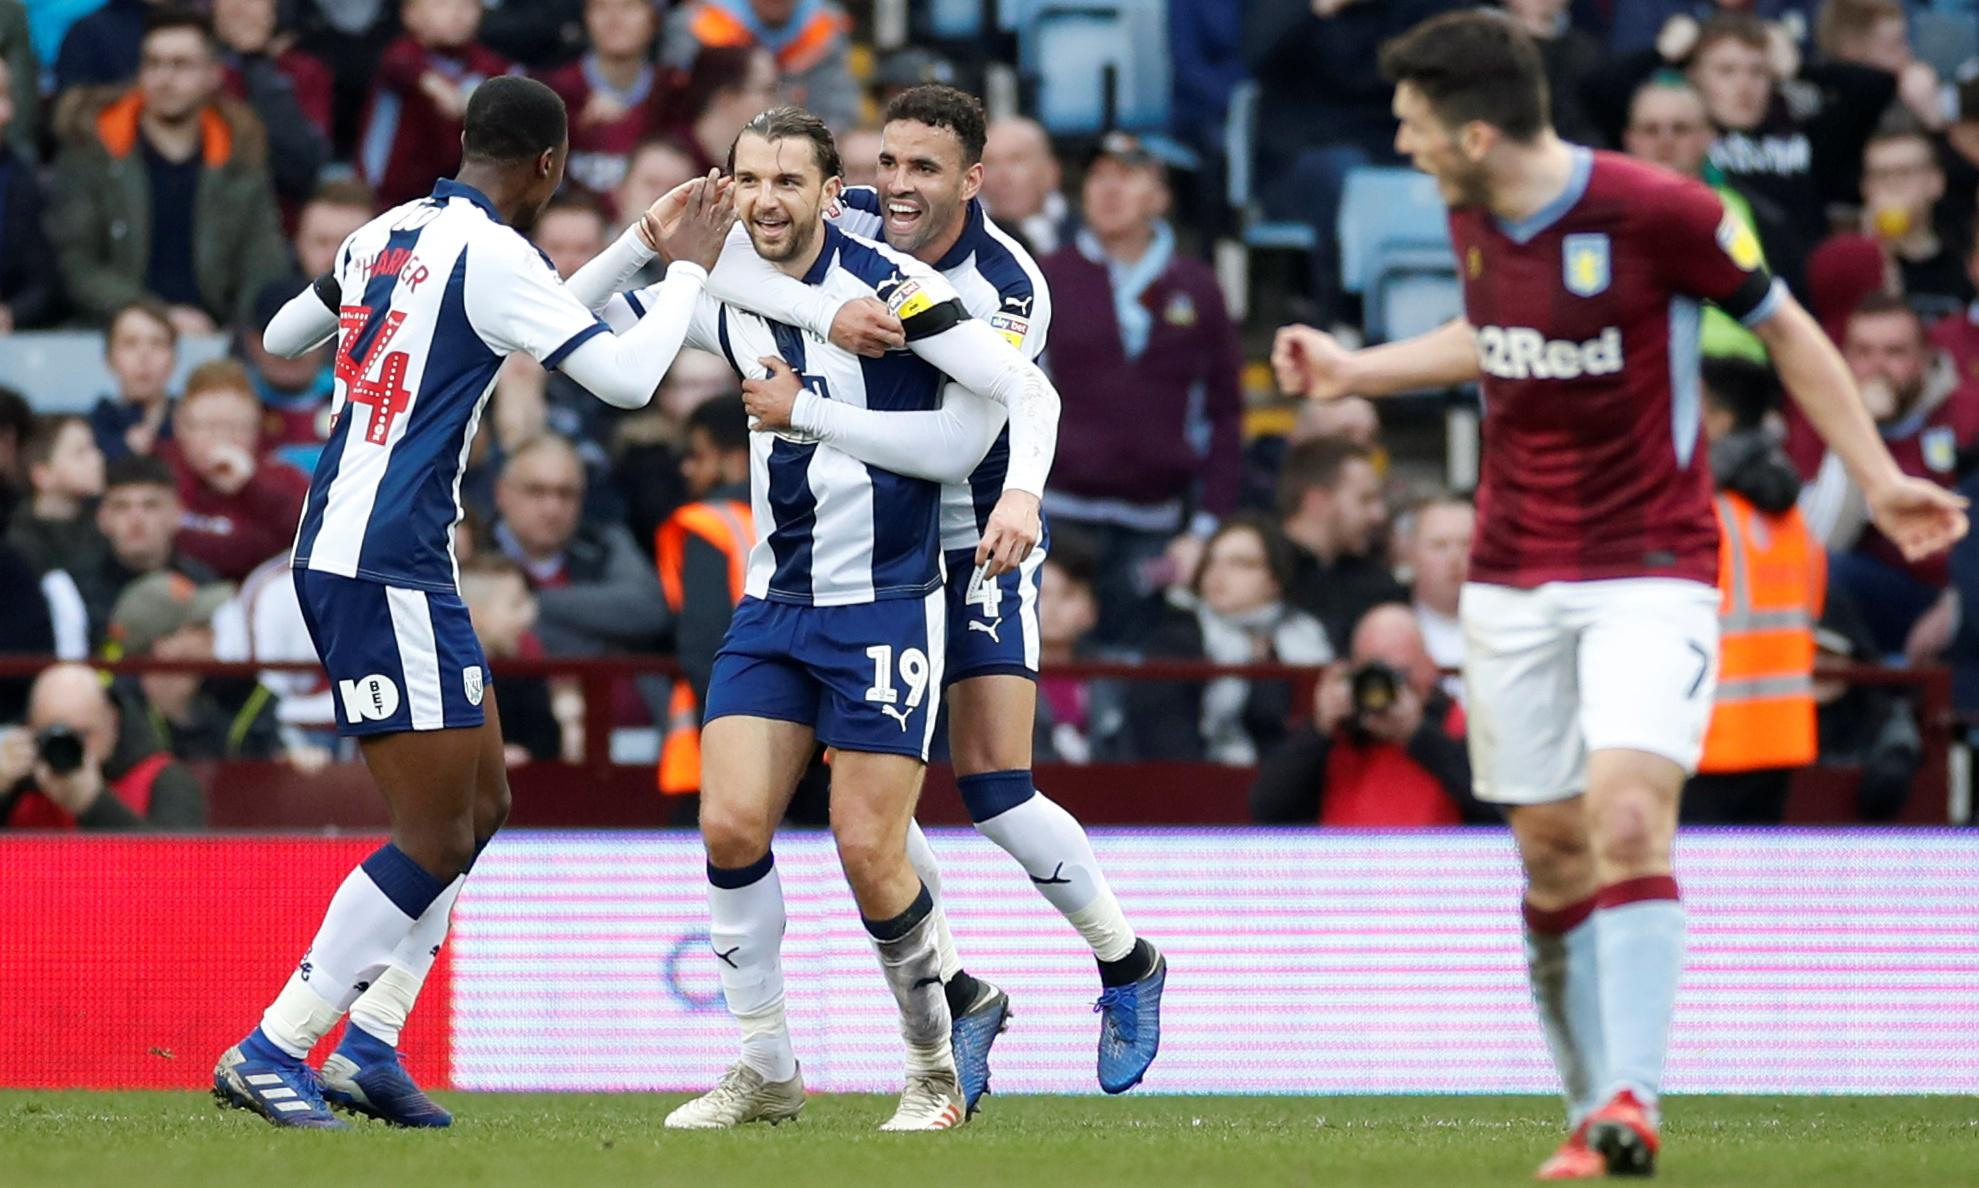 West Brom keep pace after win at Aston Villa as Blades carve up Reading